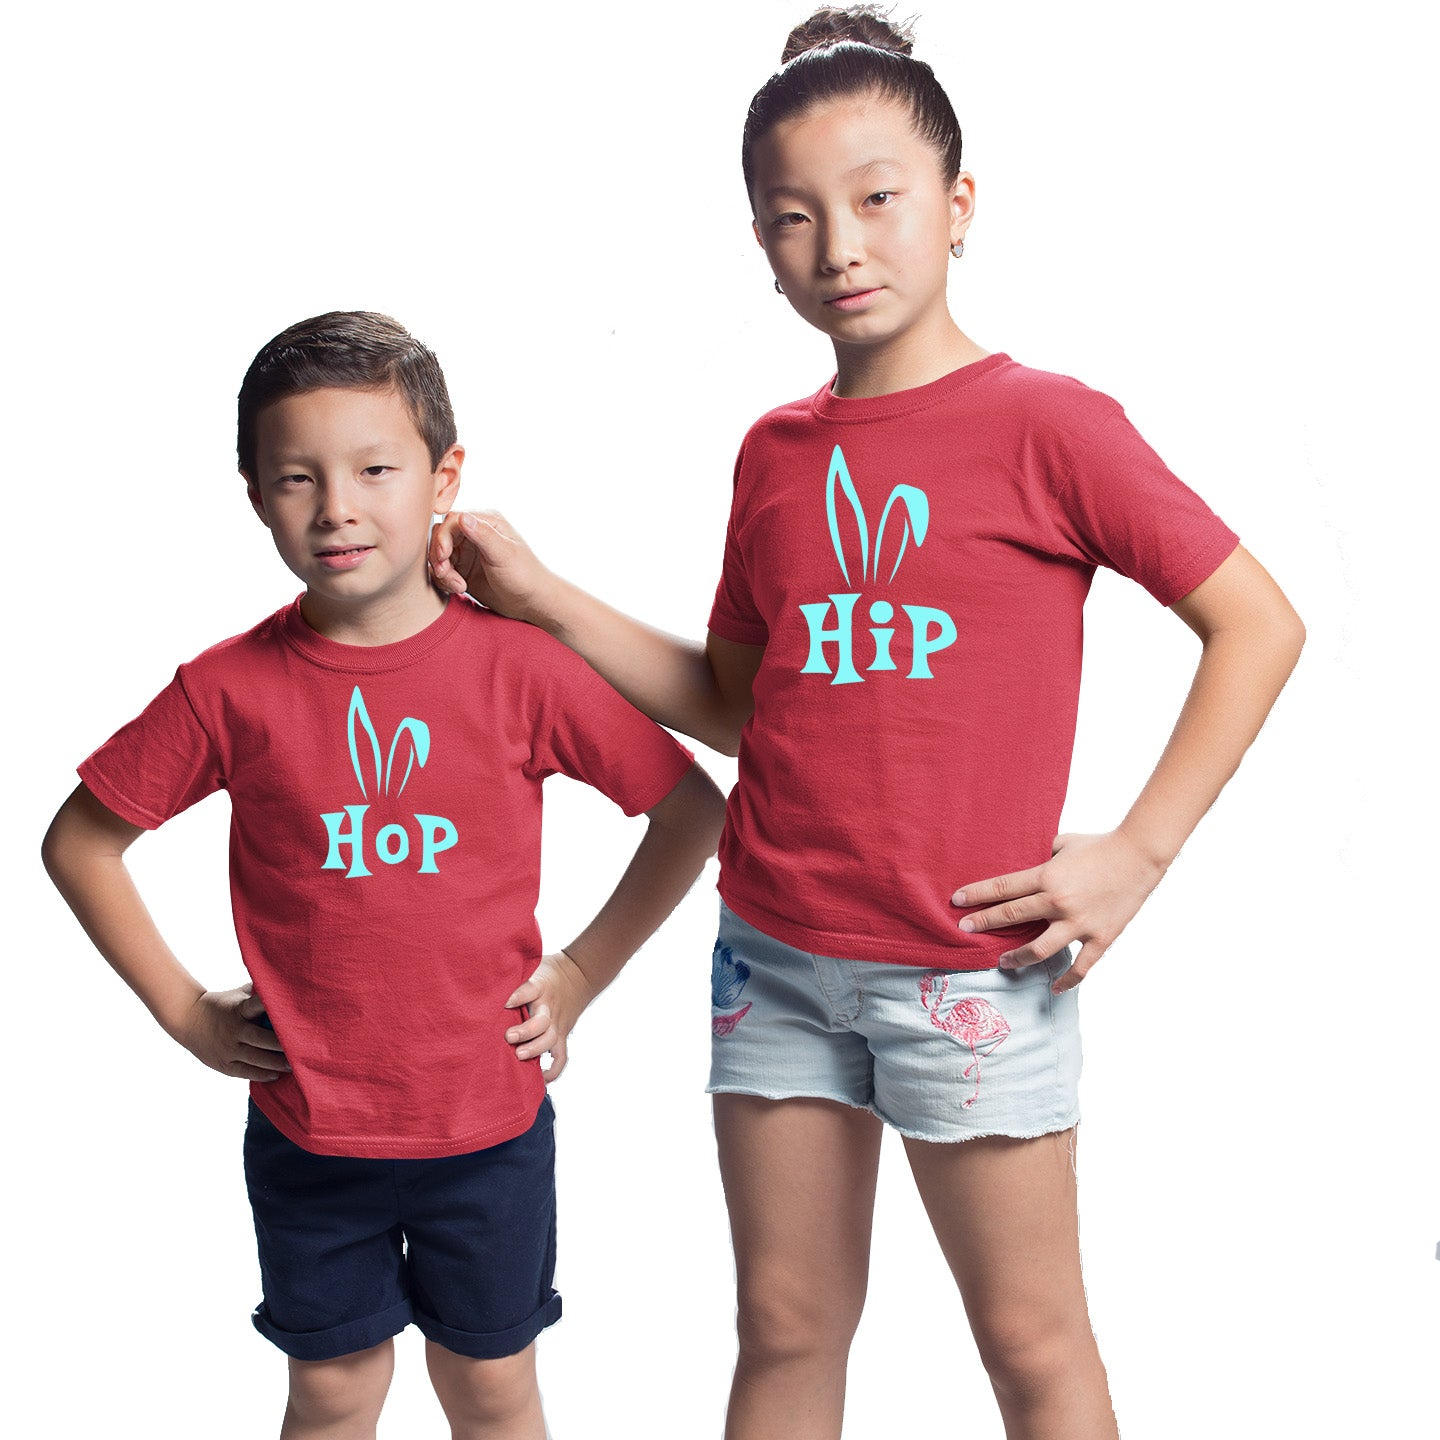 Sprinklecart Bunny Ears Hip Hop Cotton Kids T Shirt Combo for Sibling (Red)